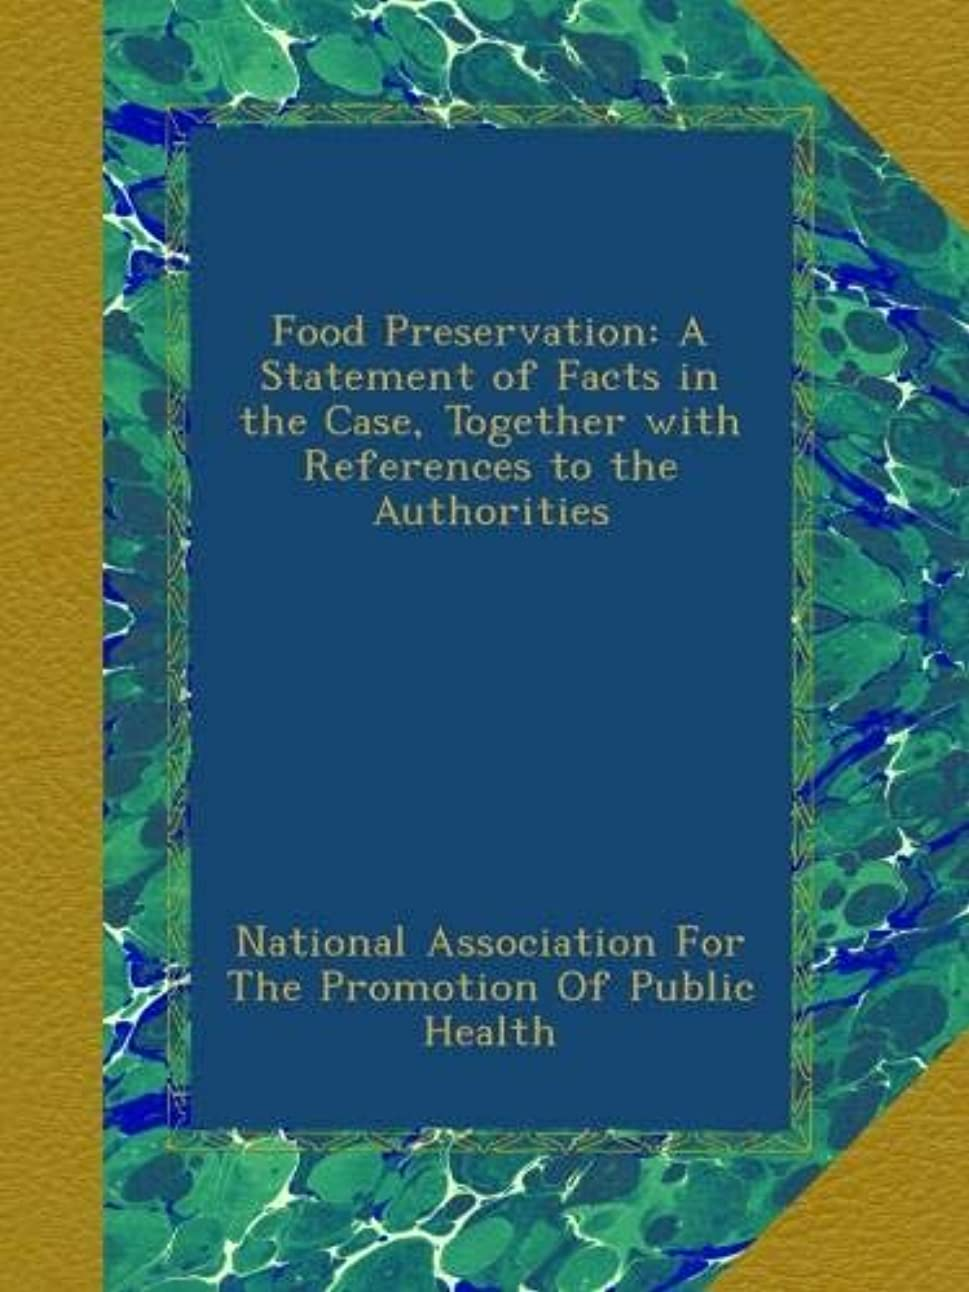 モバイルバナナすごいFood Preservation: A Statement of Facts in the Case, Together with References to the Authorities